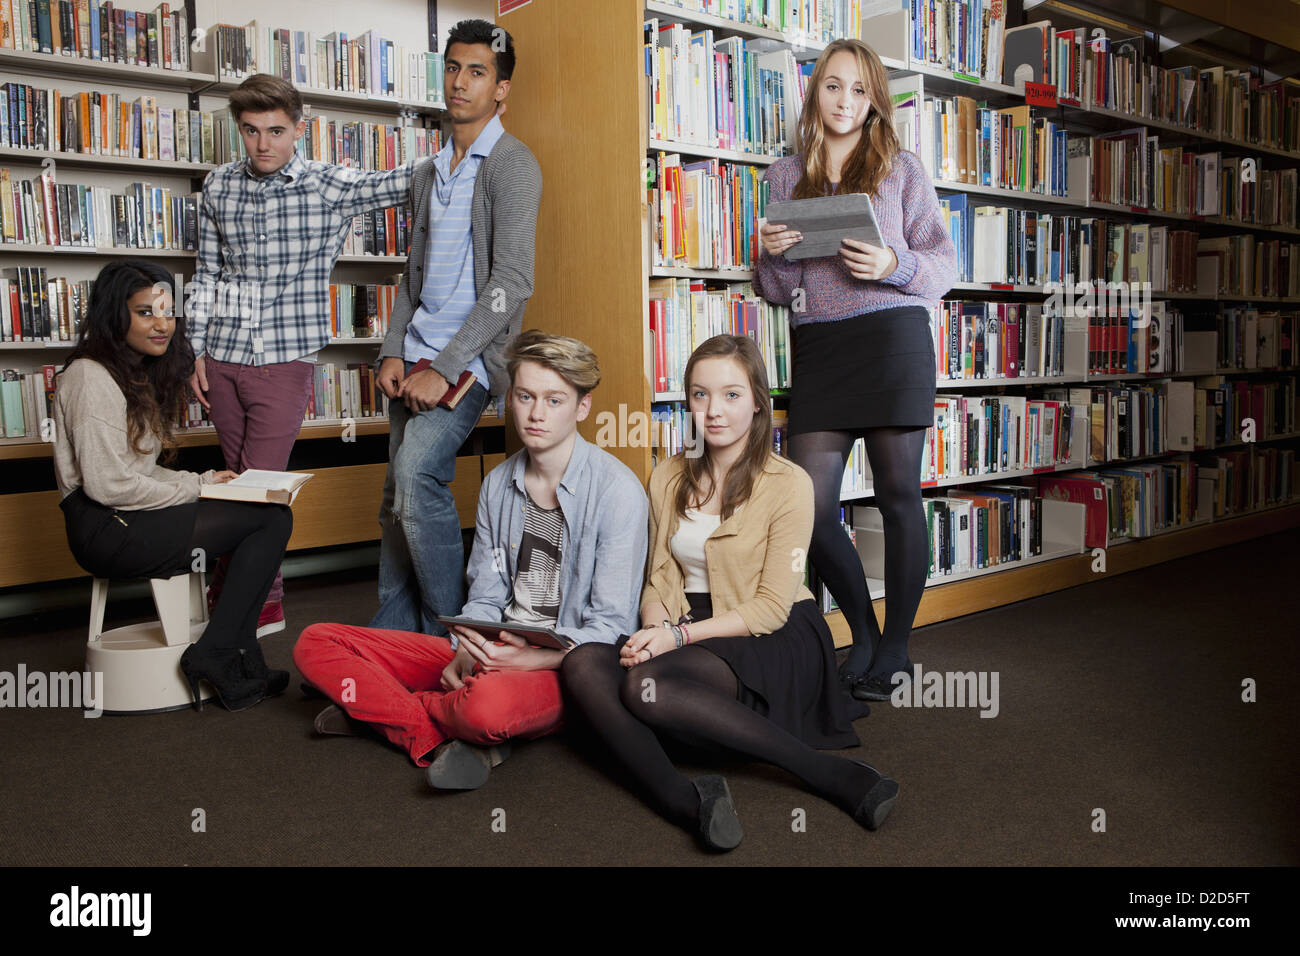 Students reading in library - Stock Image